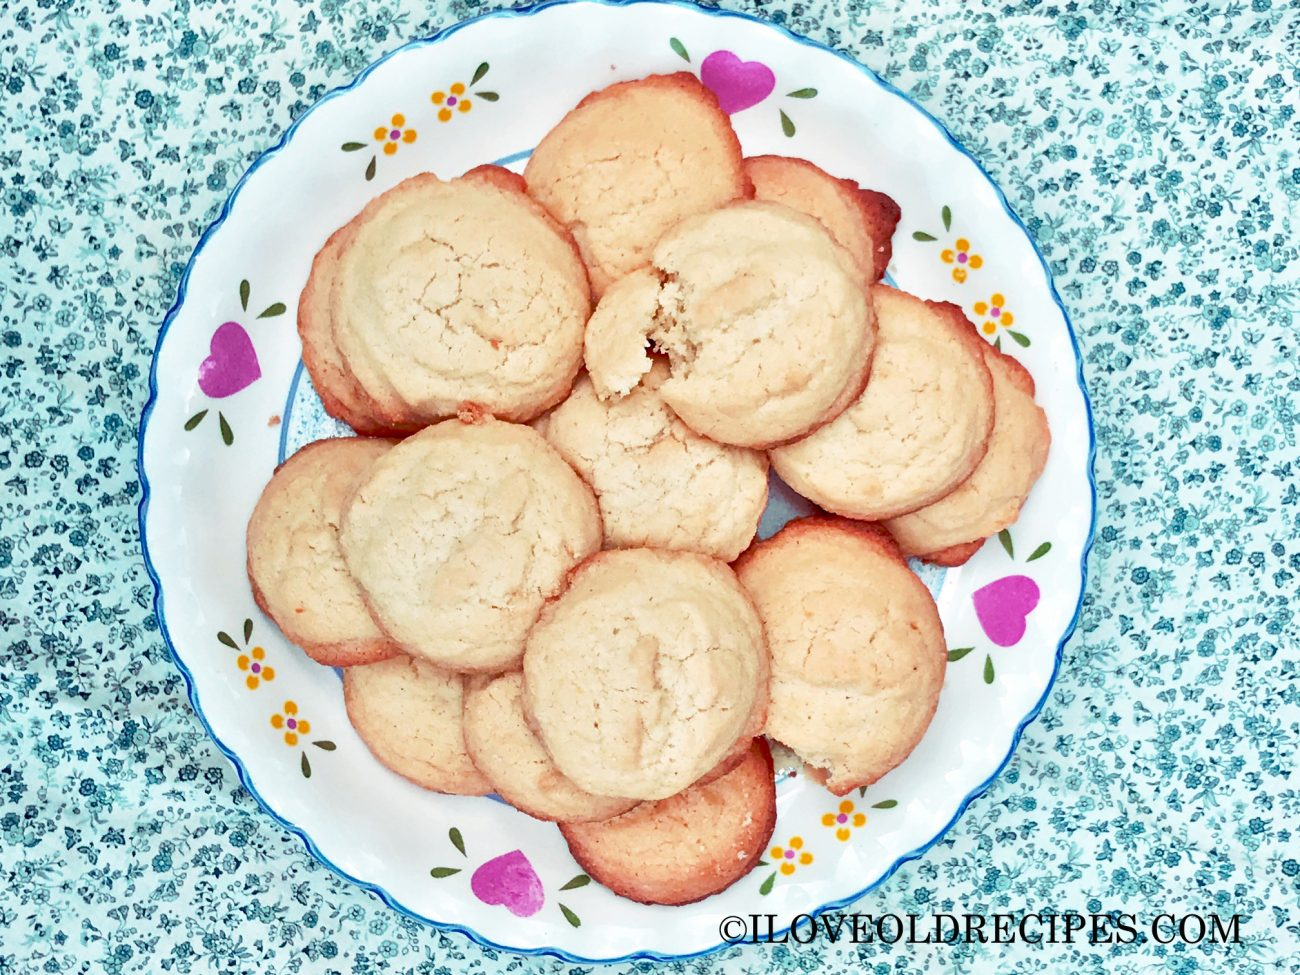 The Best Gluten-Free Sugar Cookies 1990s